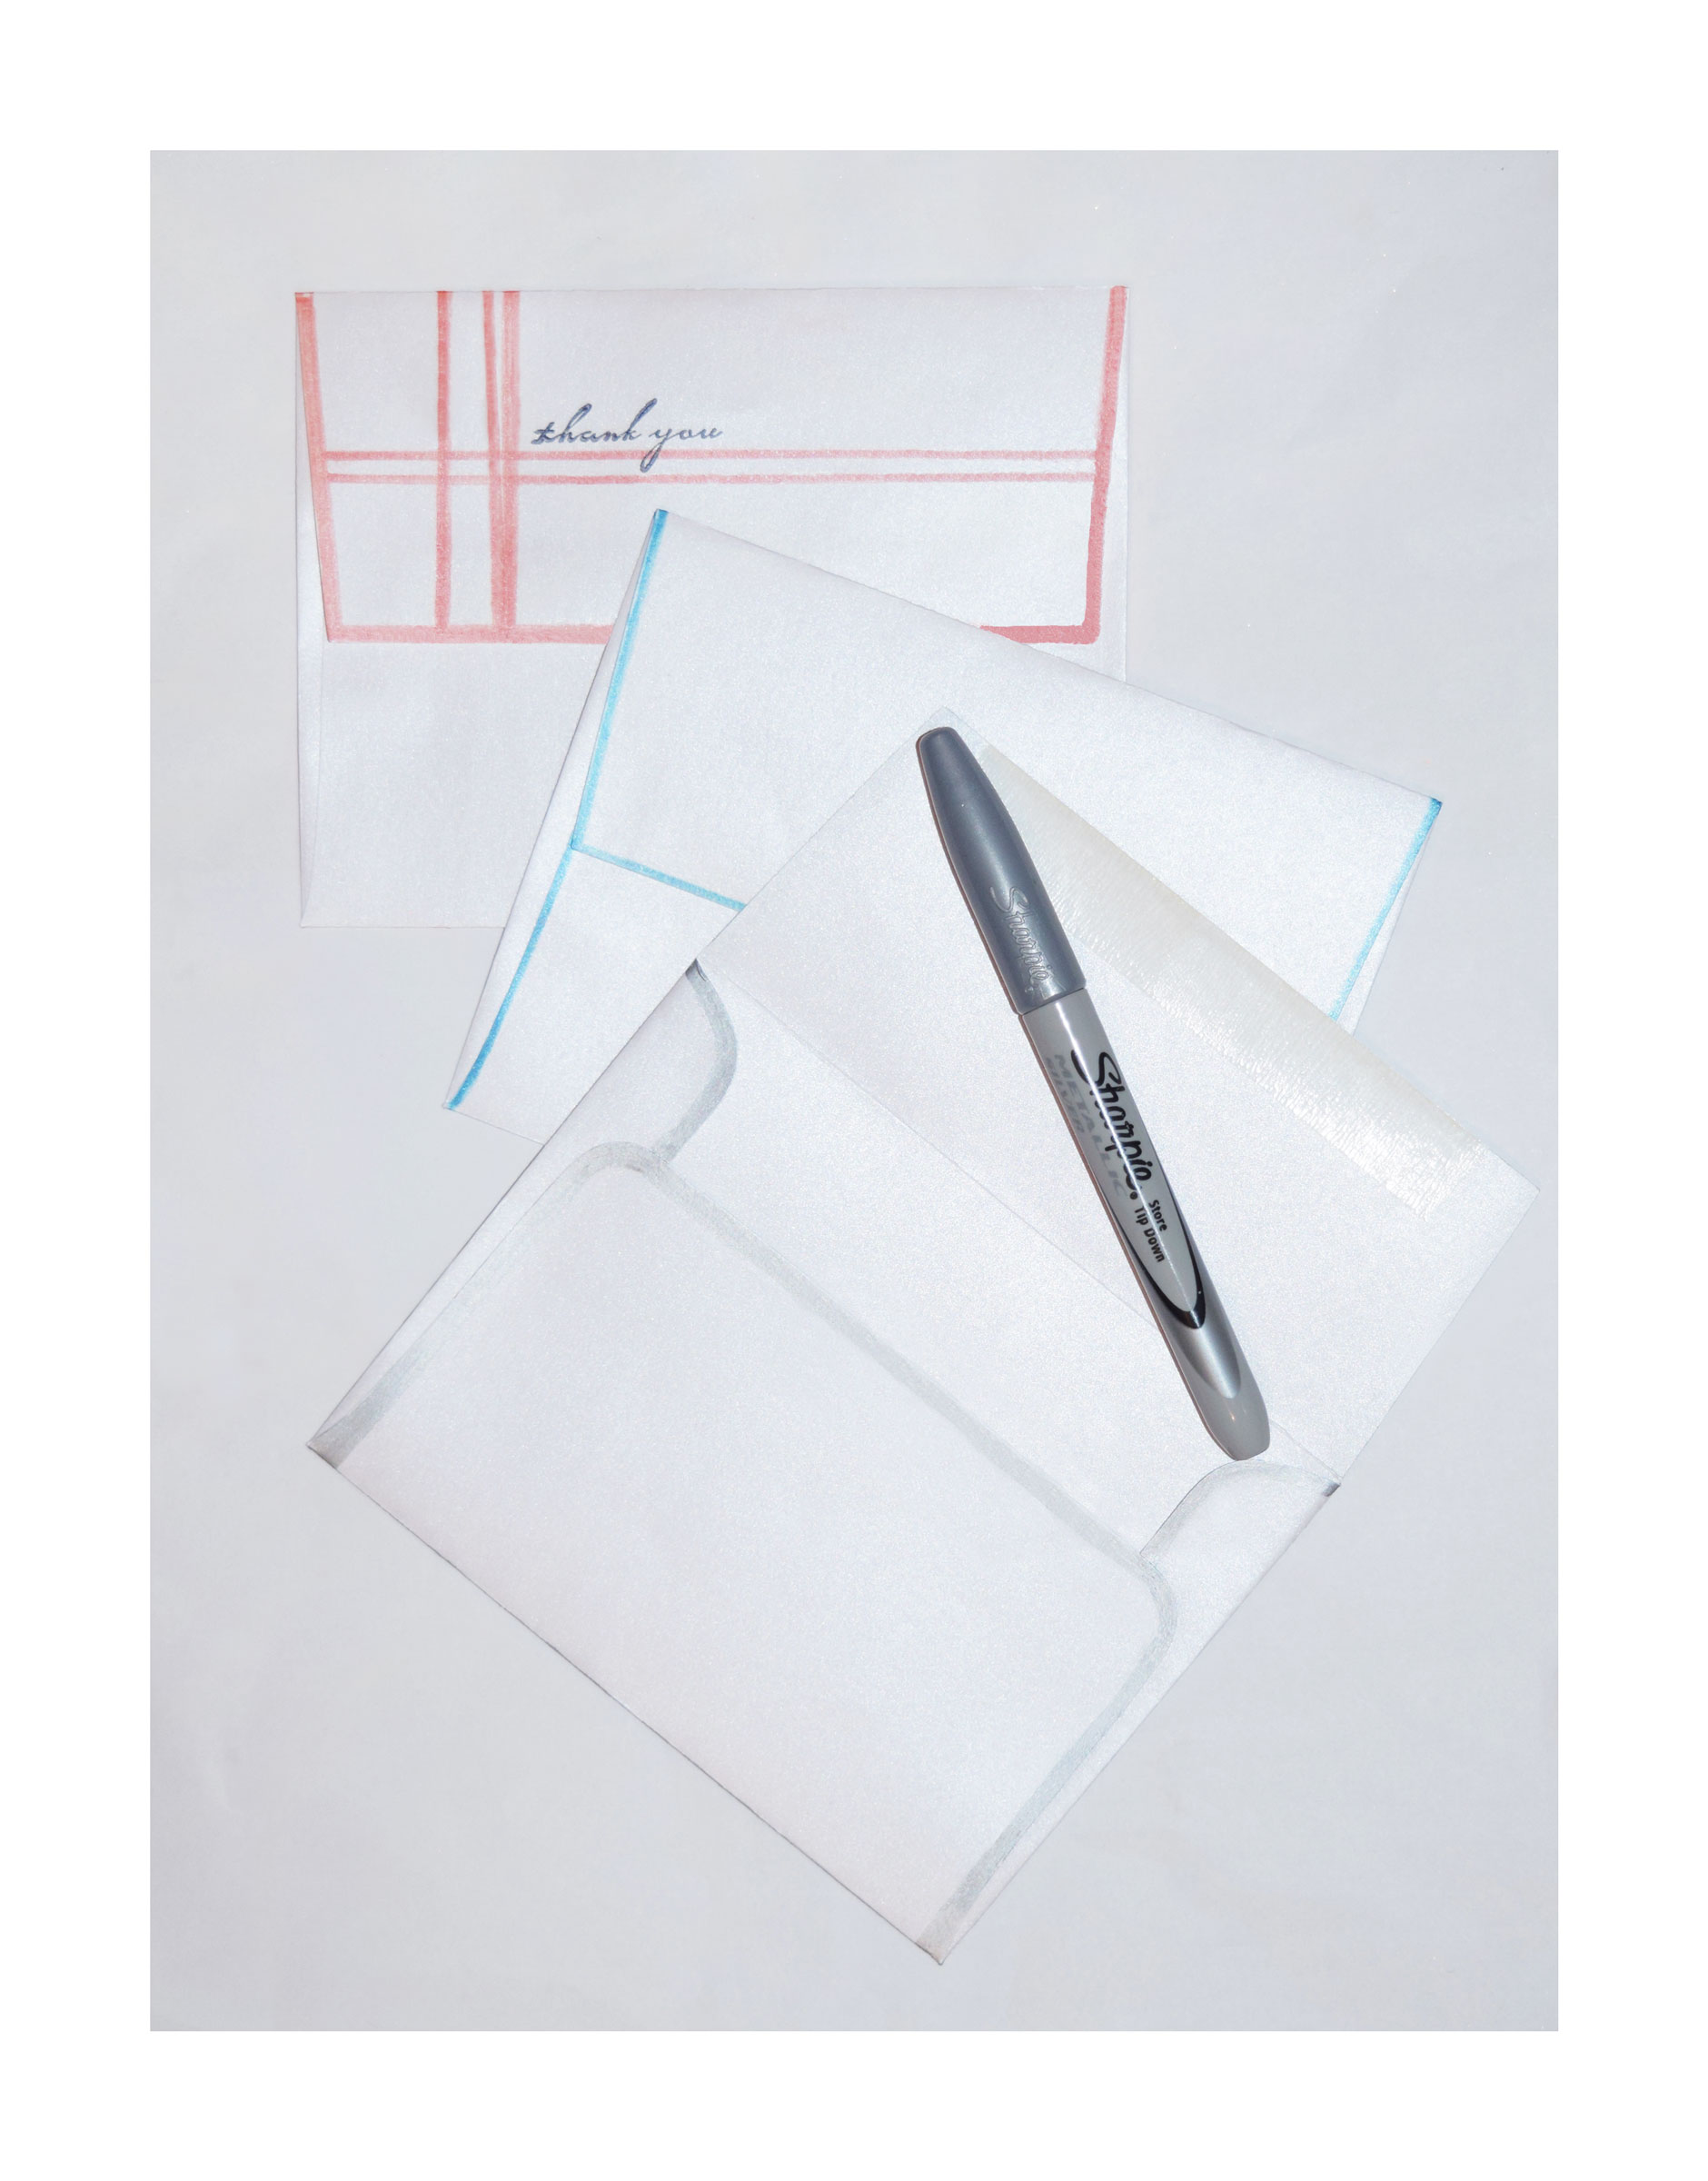 an envelope with attitude, talking edgy envelopes! - P Papers Envelope Card 1A web - An envelope with attitude, talking edgy envelopes!